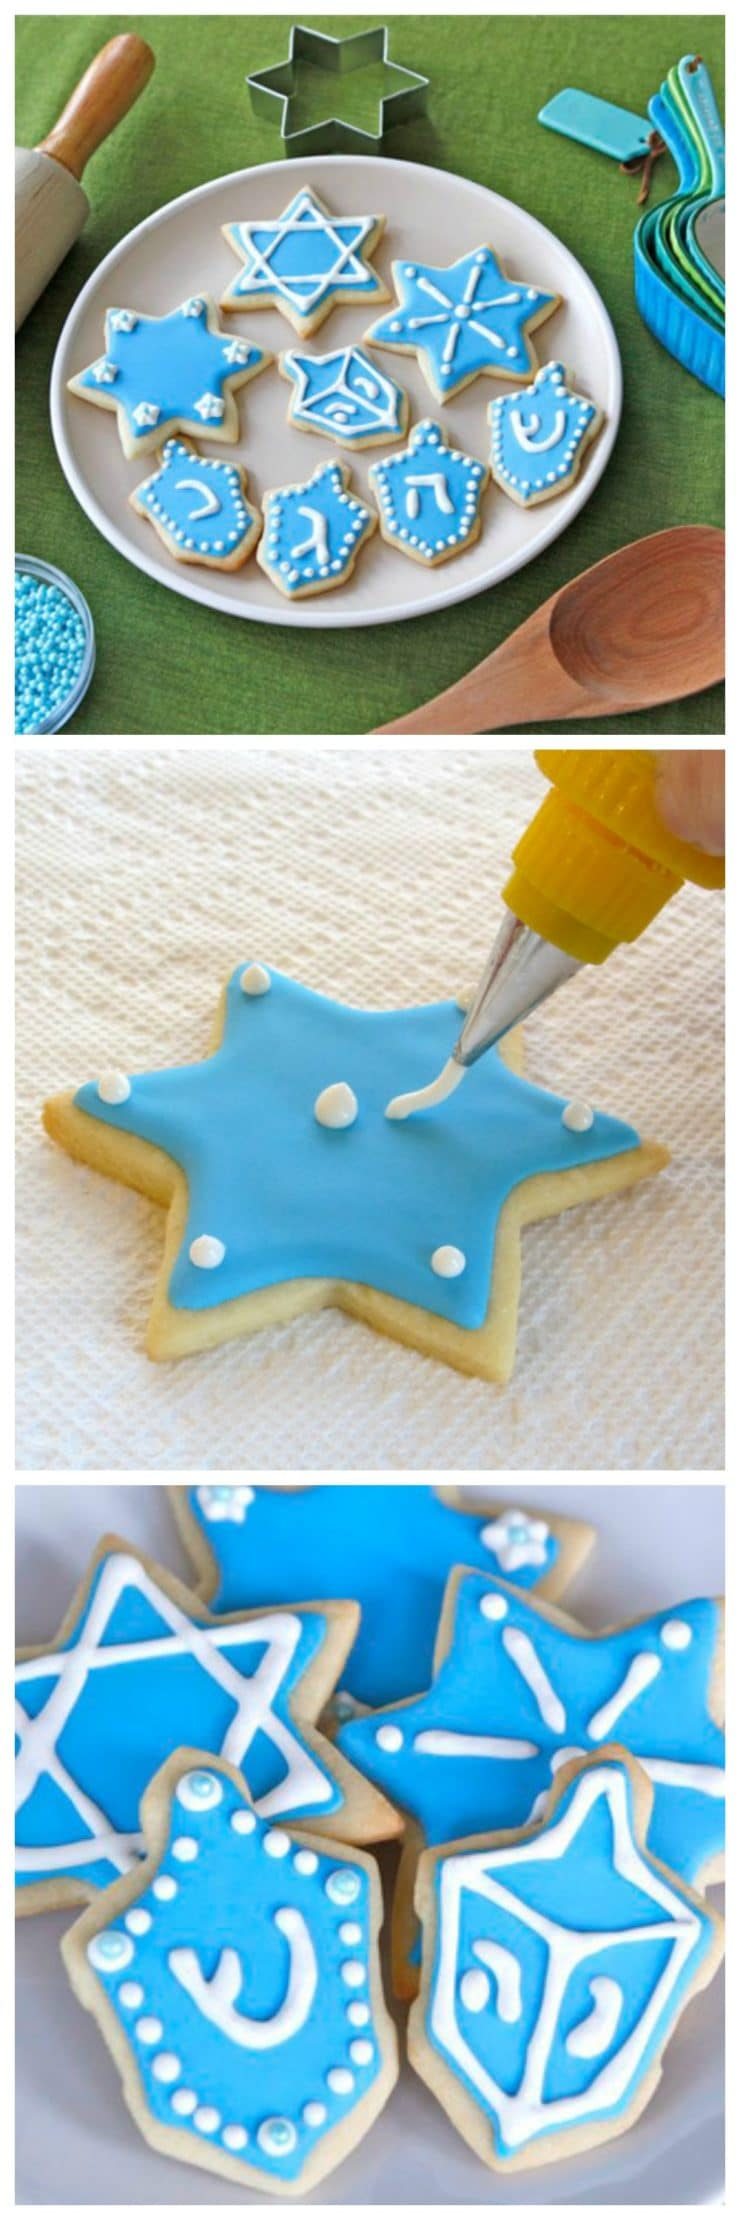 How to Decorate Sugar Cookies with Royal Icing - Tutorial with recipes, detailed instructions and step-by-step photos. | ToriAvey.com #cookies #sugarcookies #holidaycookies #cookieart #royalicing #cookieicing #howto #kitchentips #holidaysugarcookies #cookieartistry #nomnom #dessert #baking #bakingproject #bakethis #todayIlearned #holidayproject #hanukkah #chanukah #jewishholidays